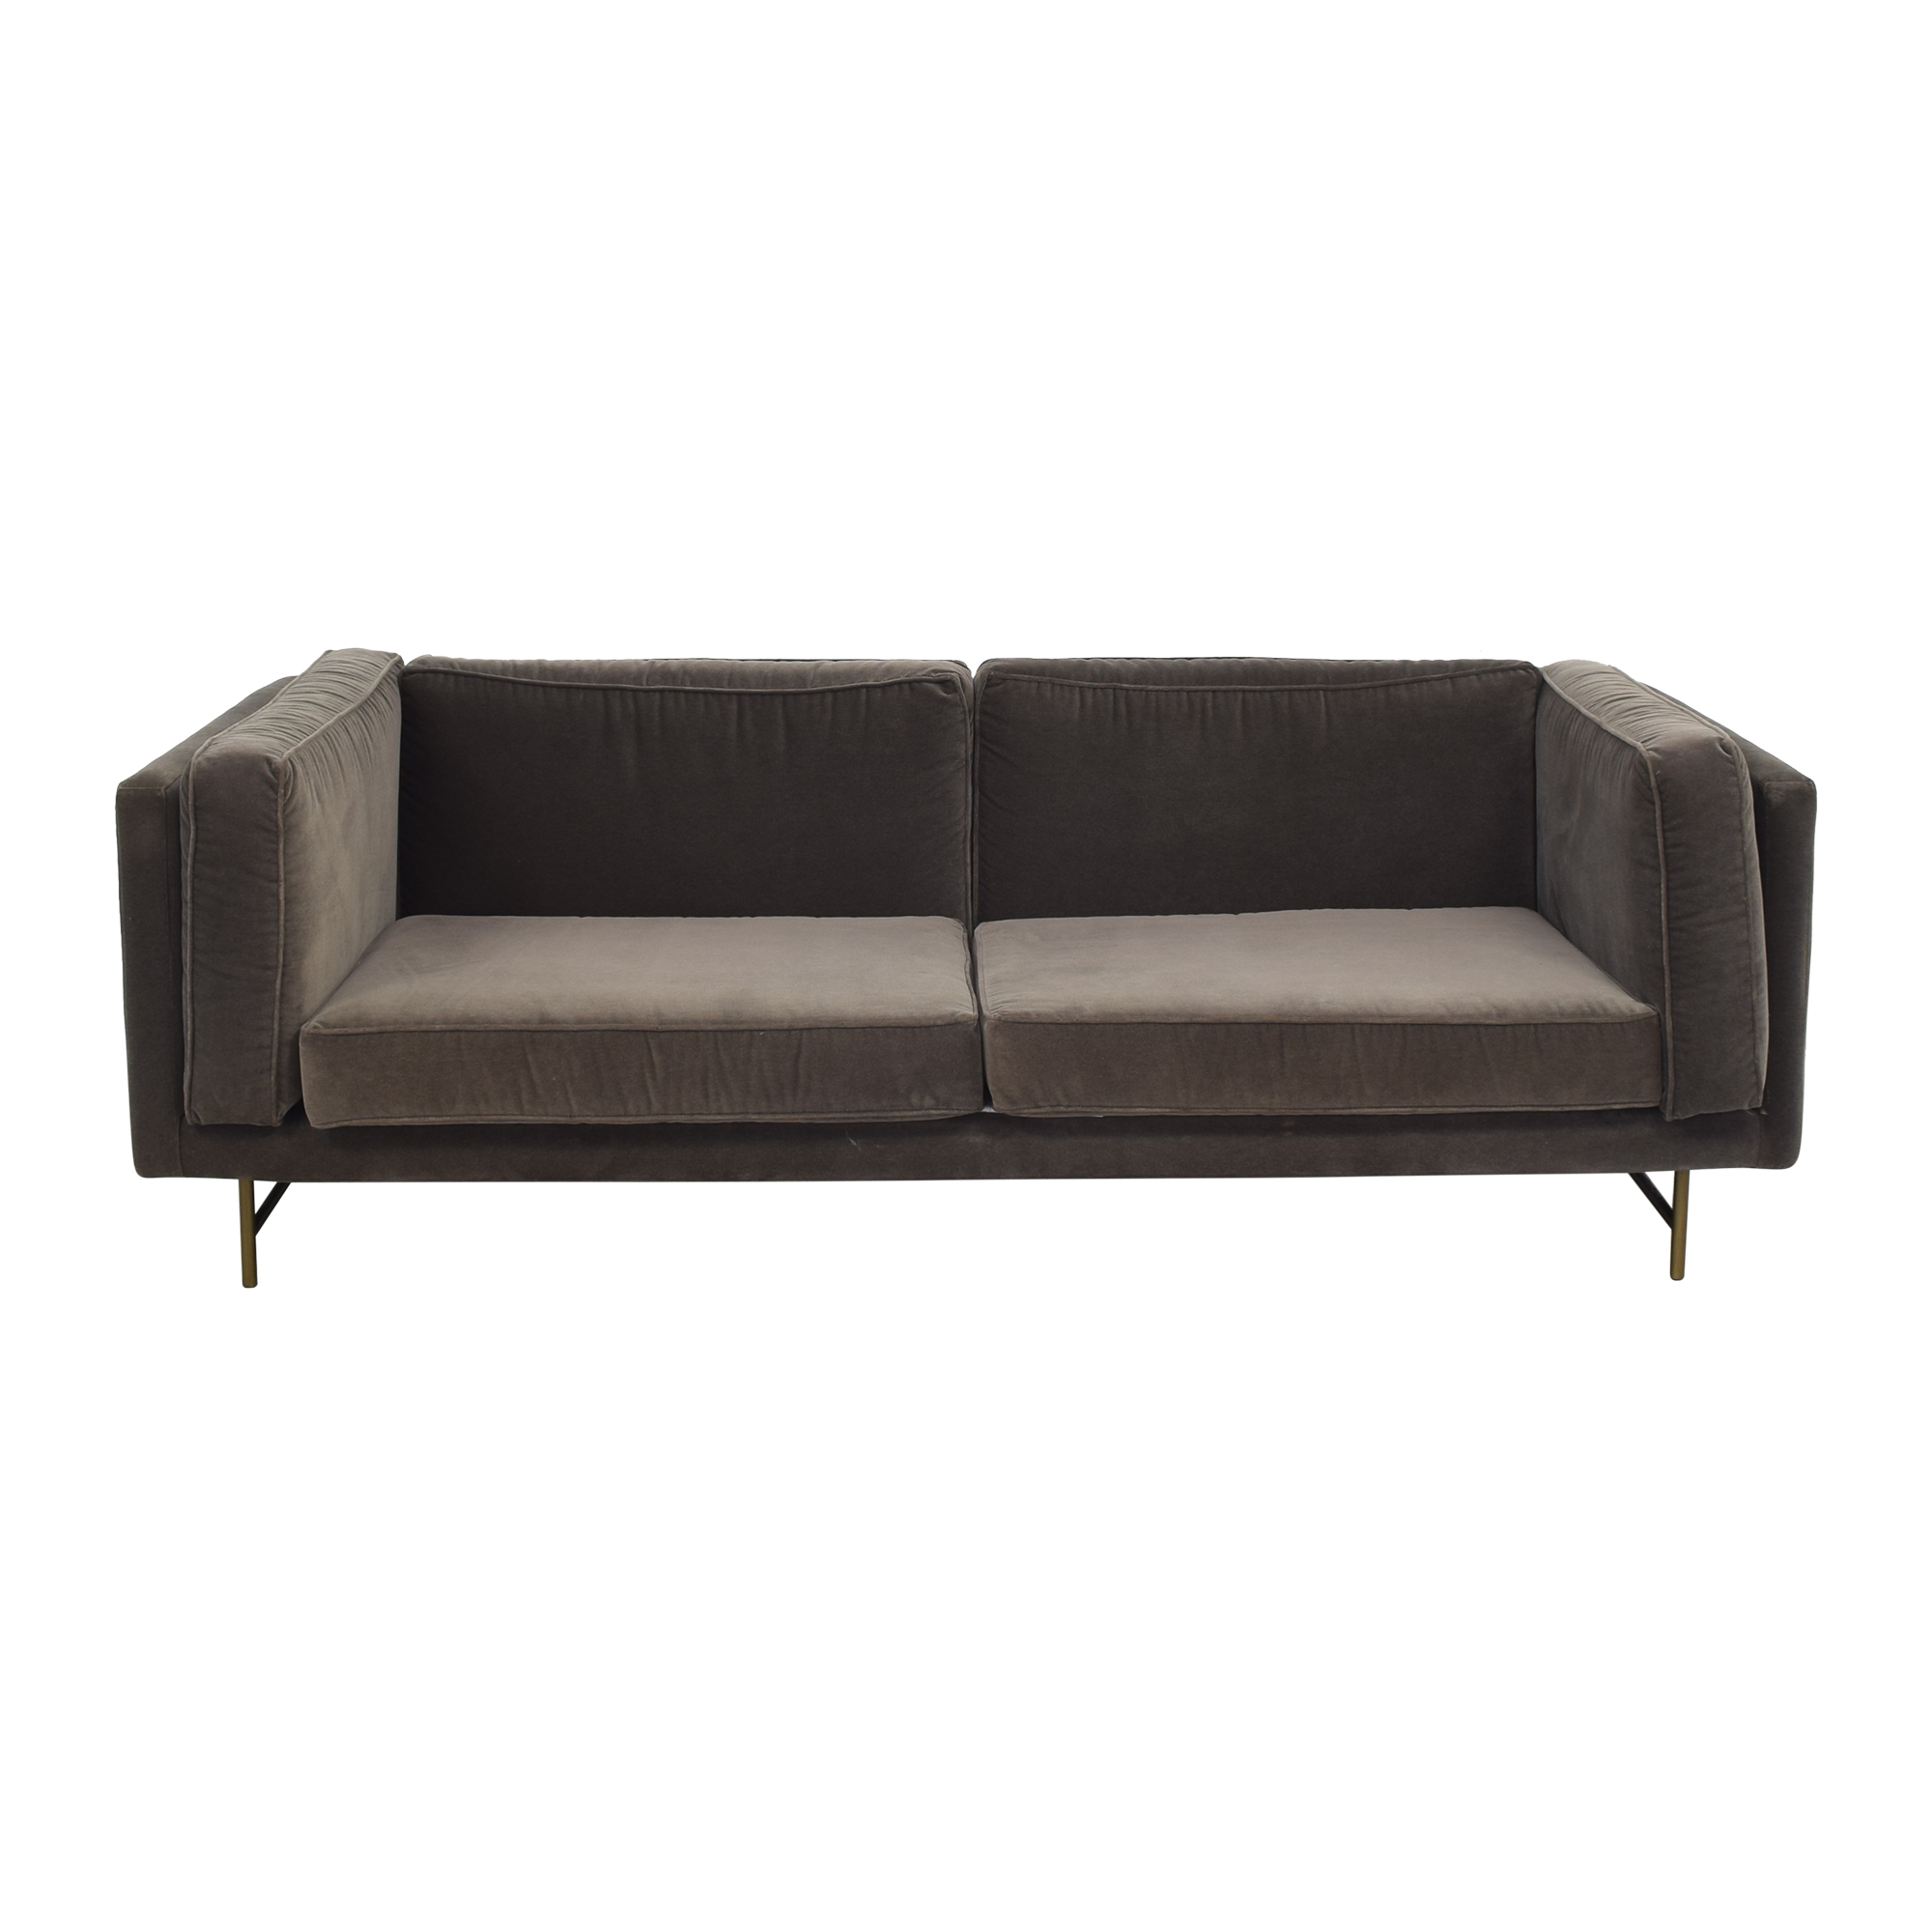 Blu Dot Blu Dot Bank Sofa nj